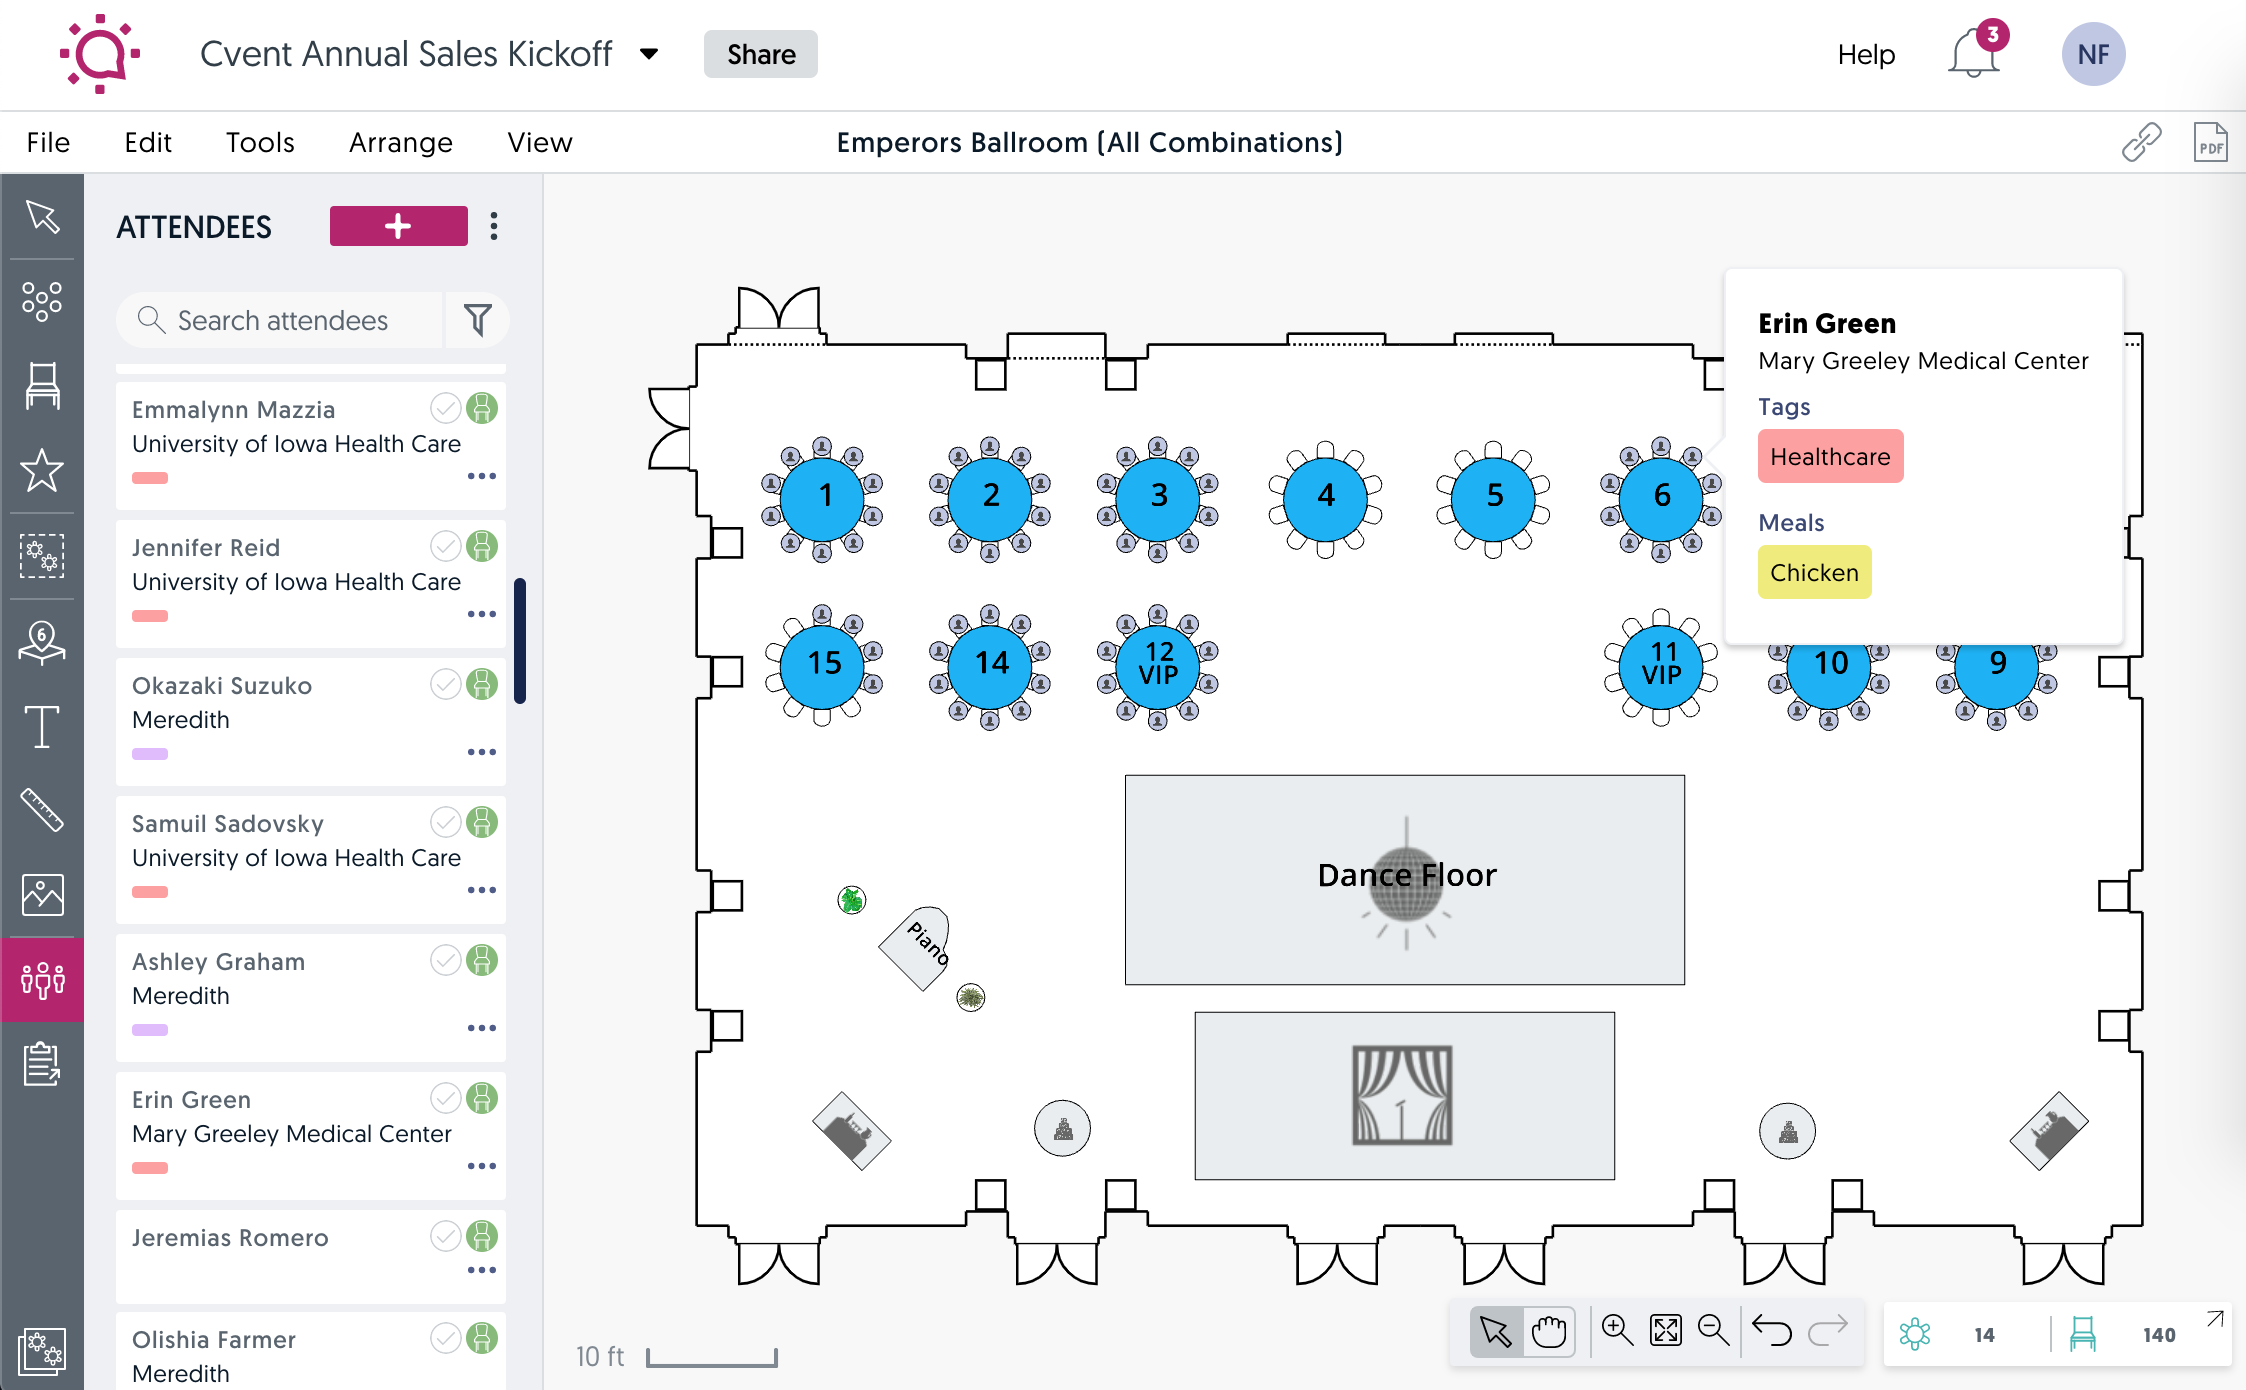 Event diagramming is an event technology trend